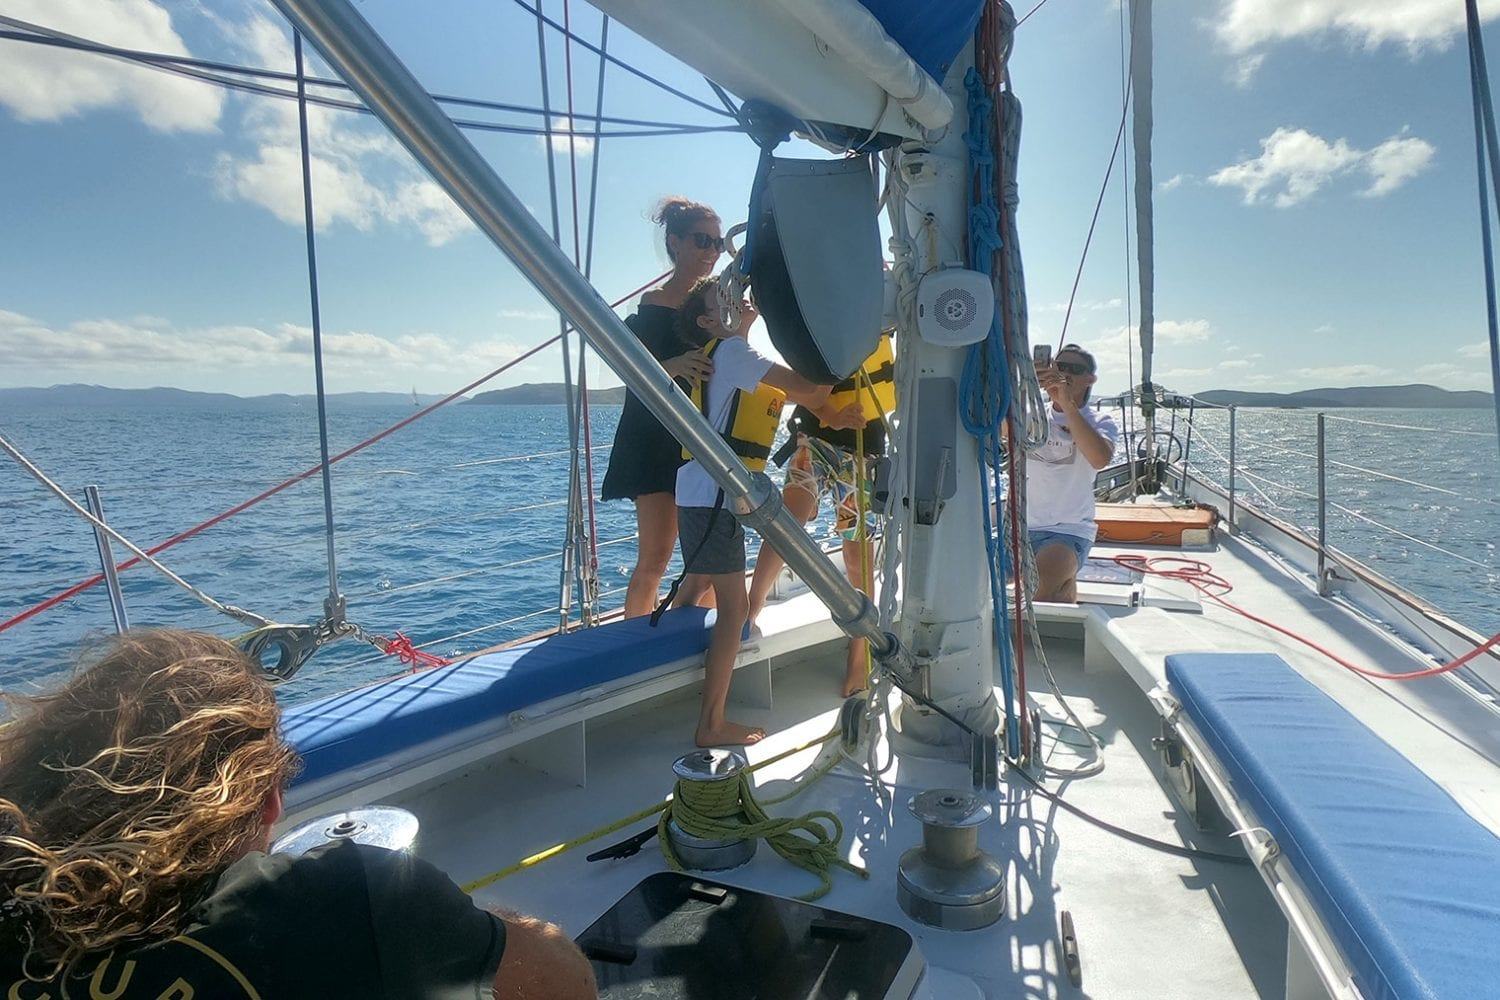 Southern-Cross---Family-Hoisting-Sails---Airlie-Beach-Tourism